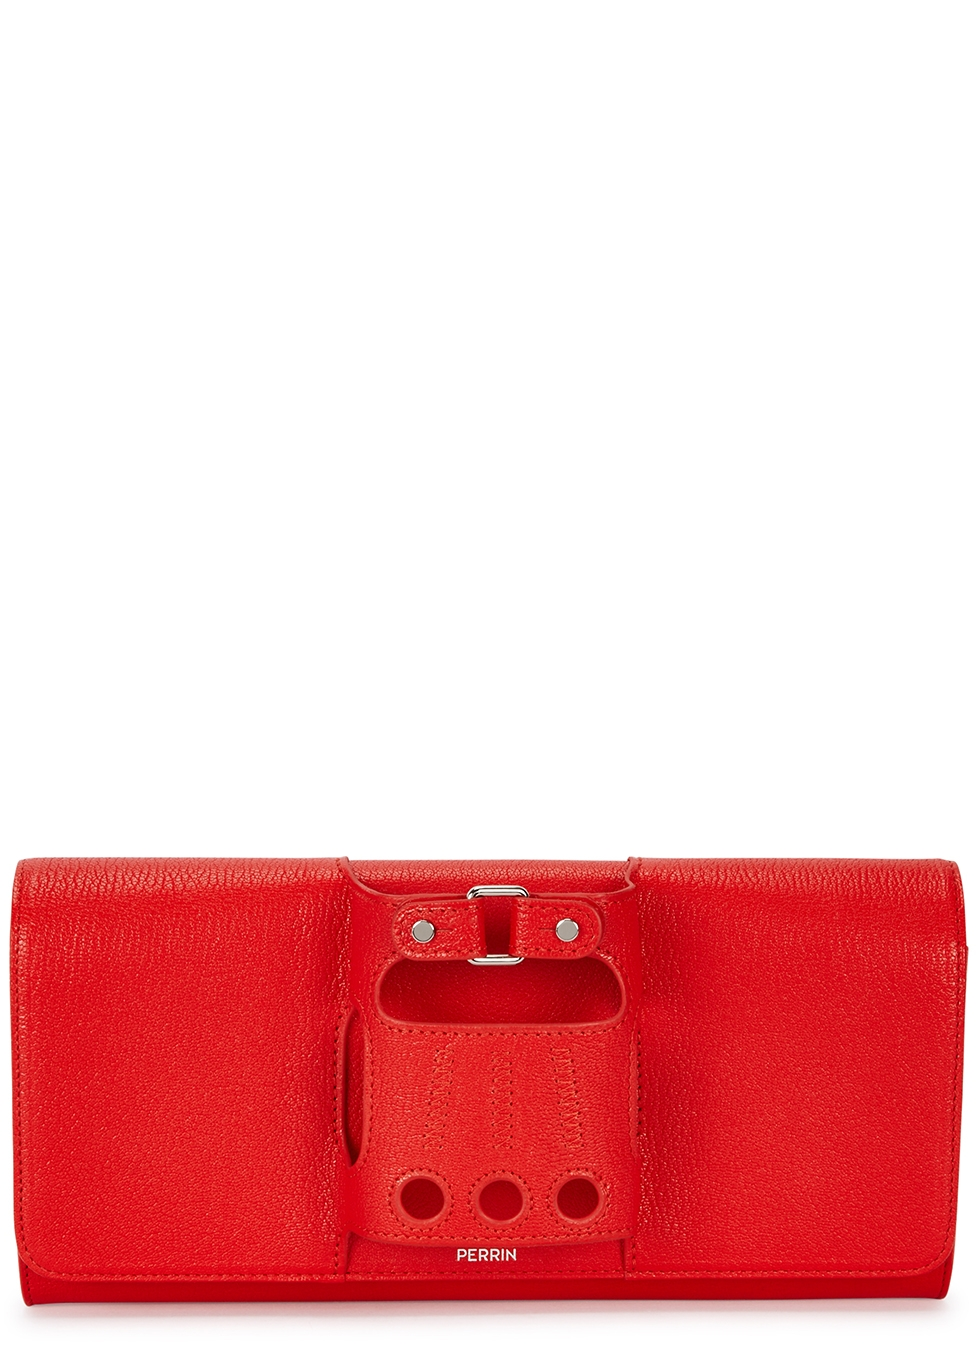 PERRIN Le Cabriolet Red Leather Clutch